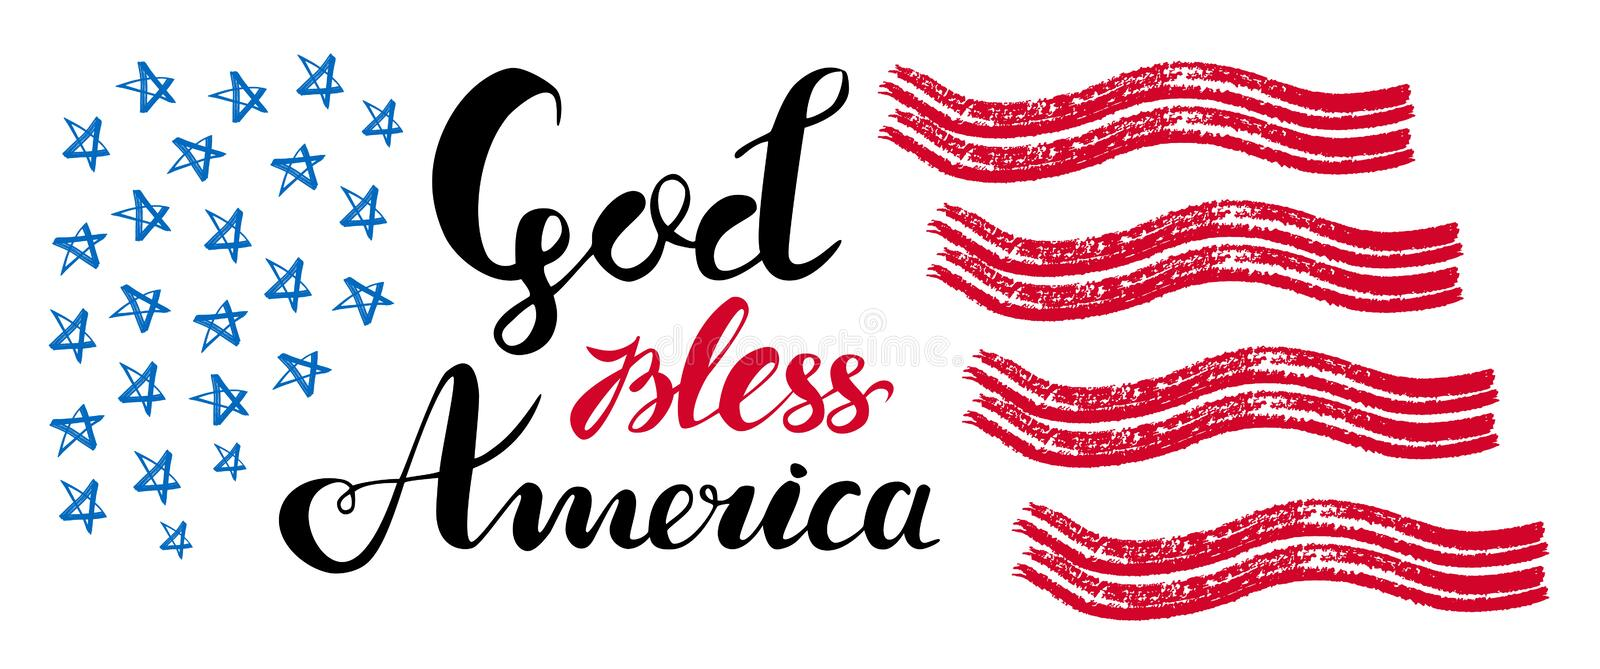 God bless America hand drawn vector lettering with stars and stripes for posters, greeting cards and web banners royalty free illustration